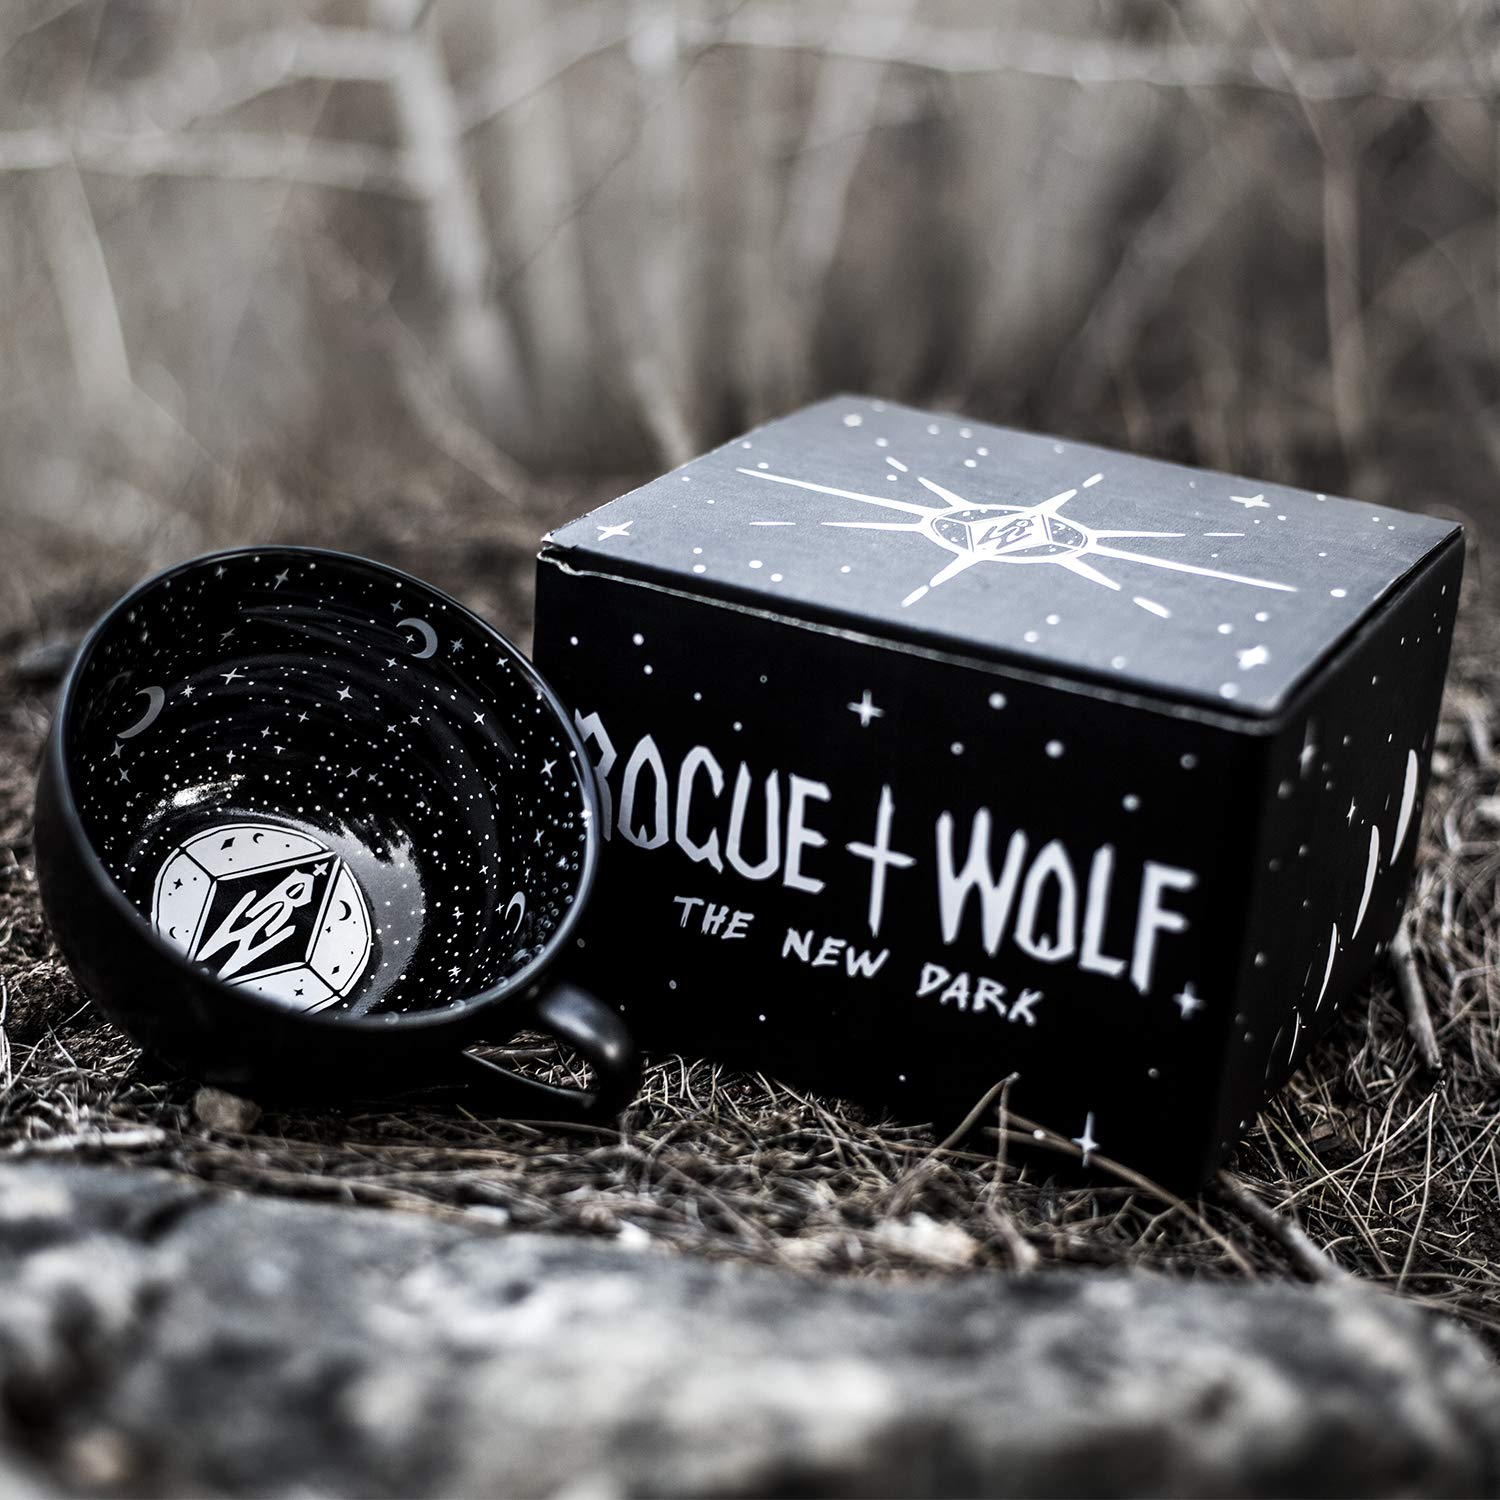 Midnight Coffee Large Mug in Gift Box By Rogue + Wolf Cute Mugs For Women Unique Witch Halloween Gifts Novelty Tea Cup Goth Decor - 17.6oz 500ml Porcelain by Rogue + Wolf (Image #4)